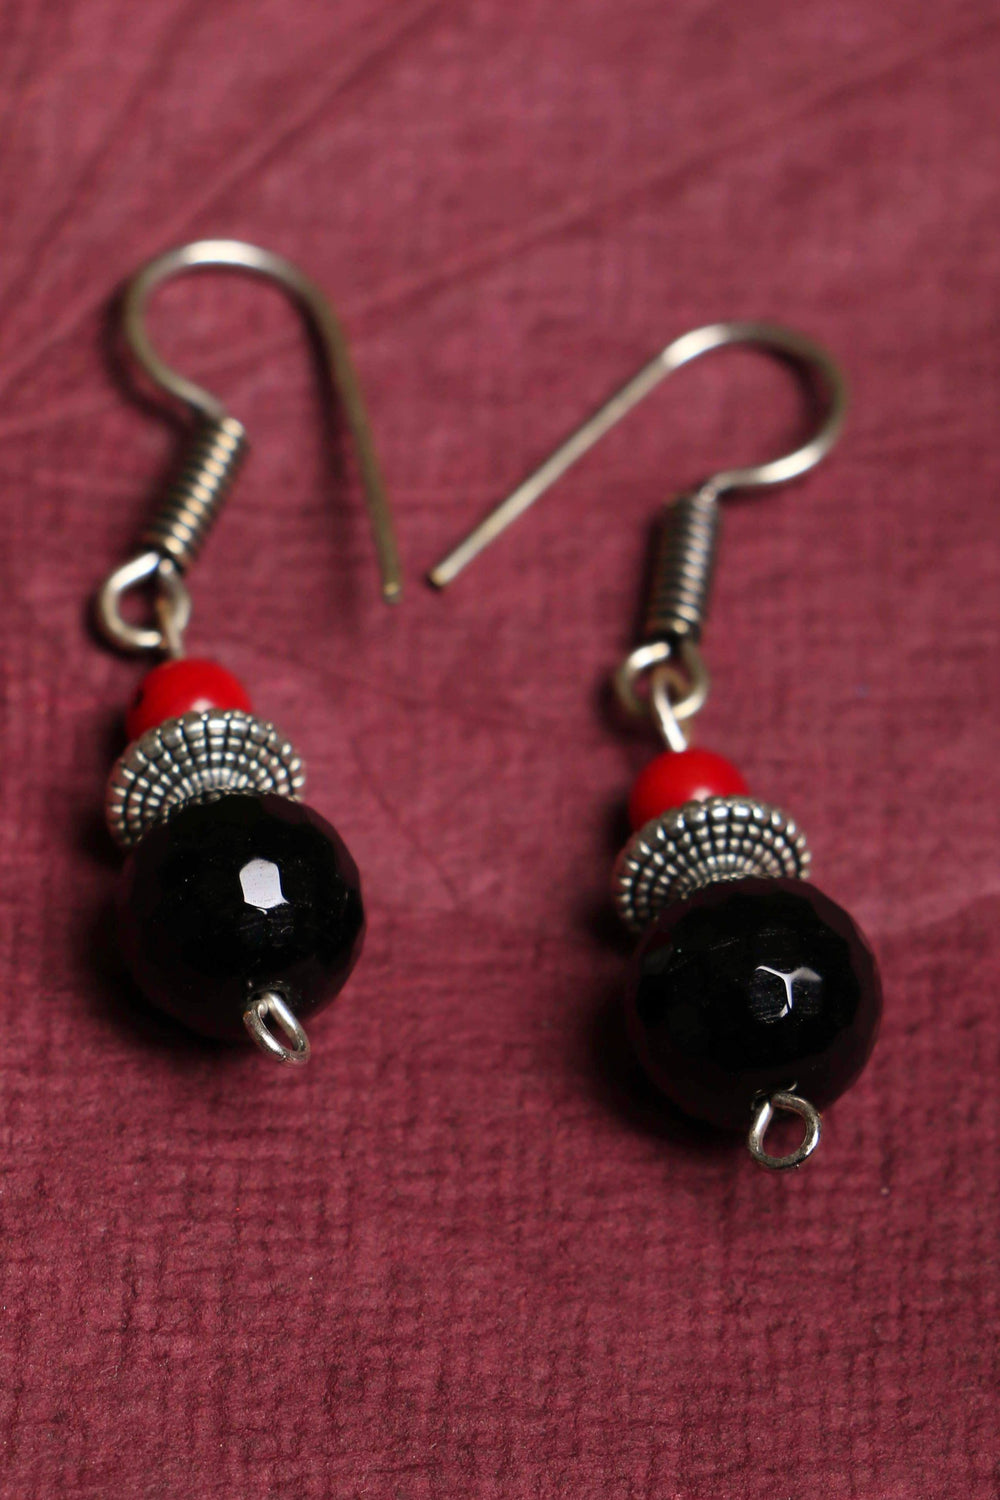 Black onyx and red coral earrings, with German silver accents